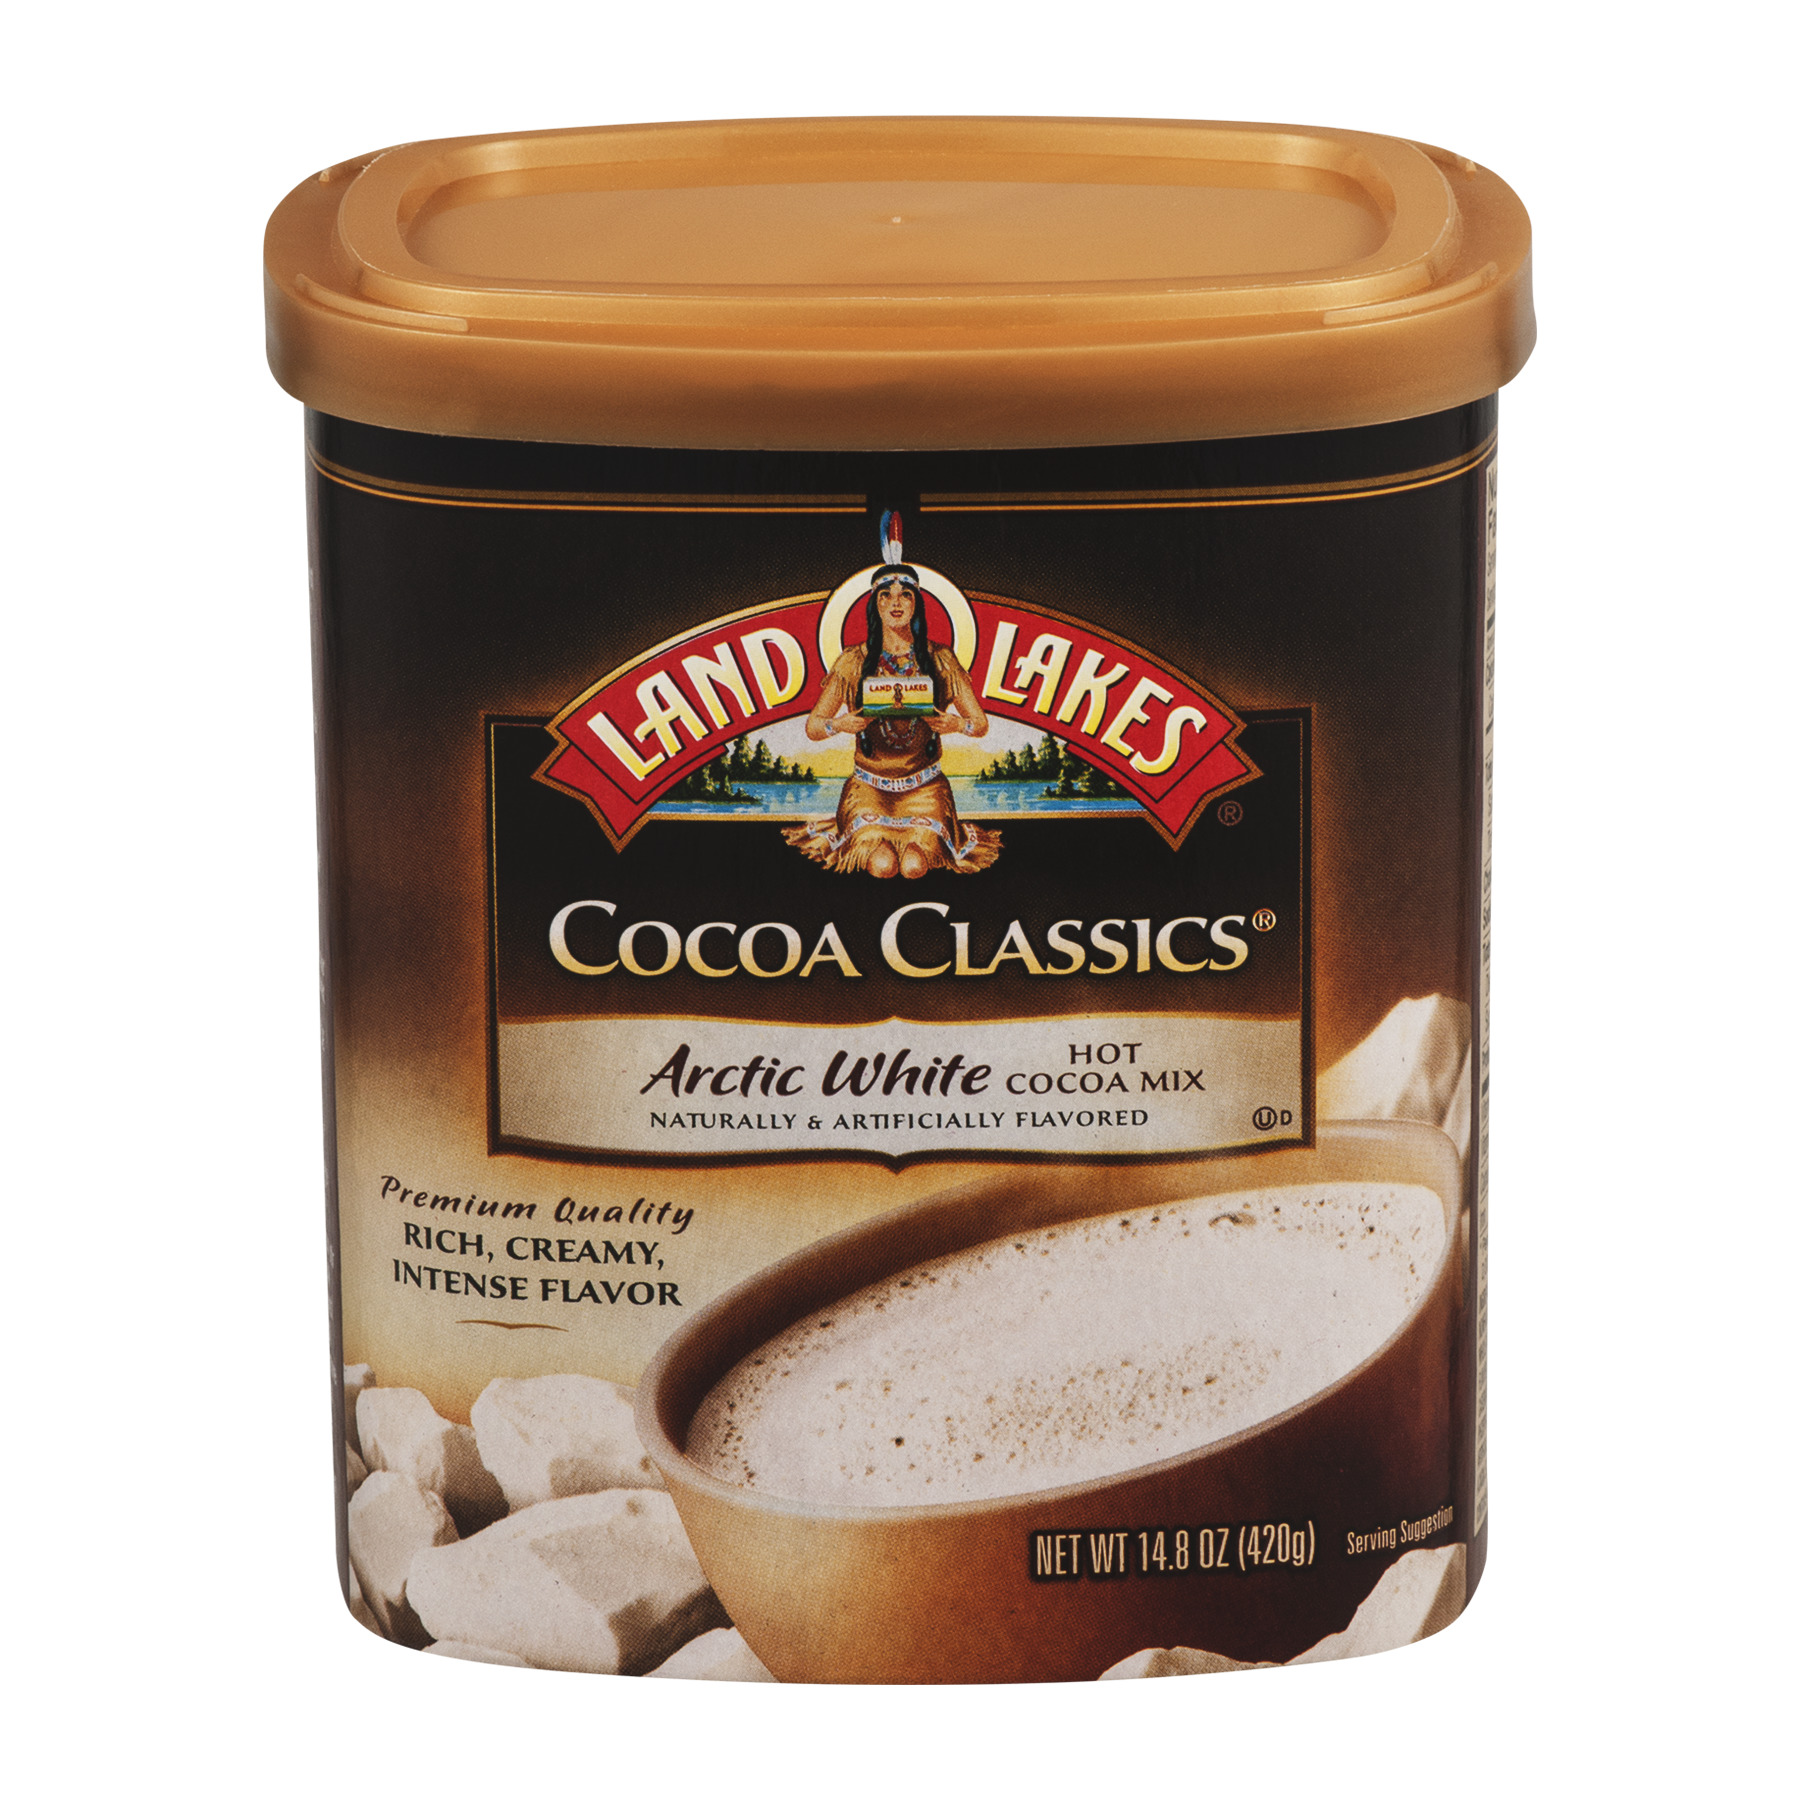 Land O'Lakes Cocoa Classics Artic White Hot Cocoa Mix, 14.8 OZ